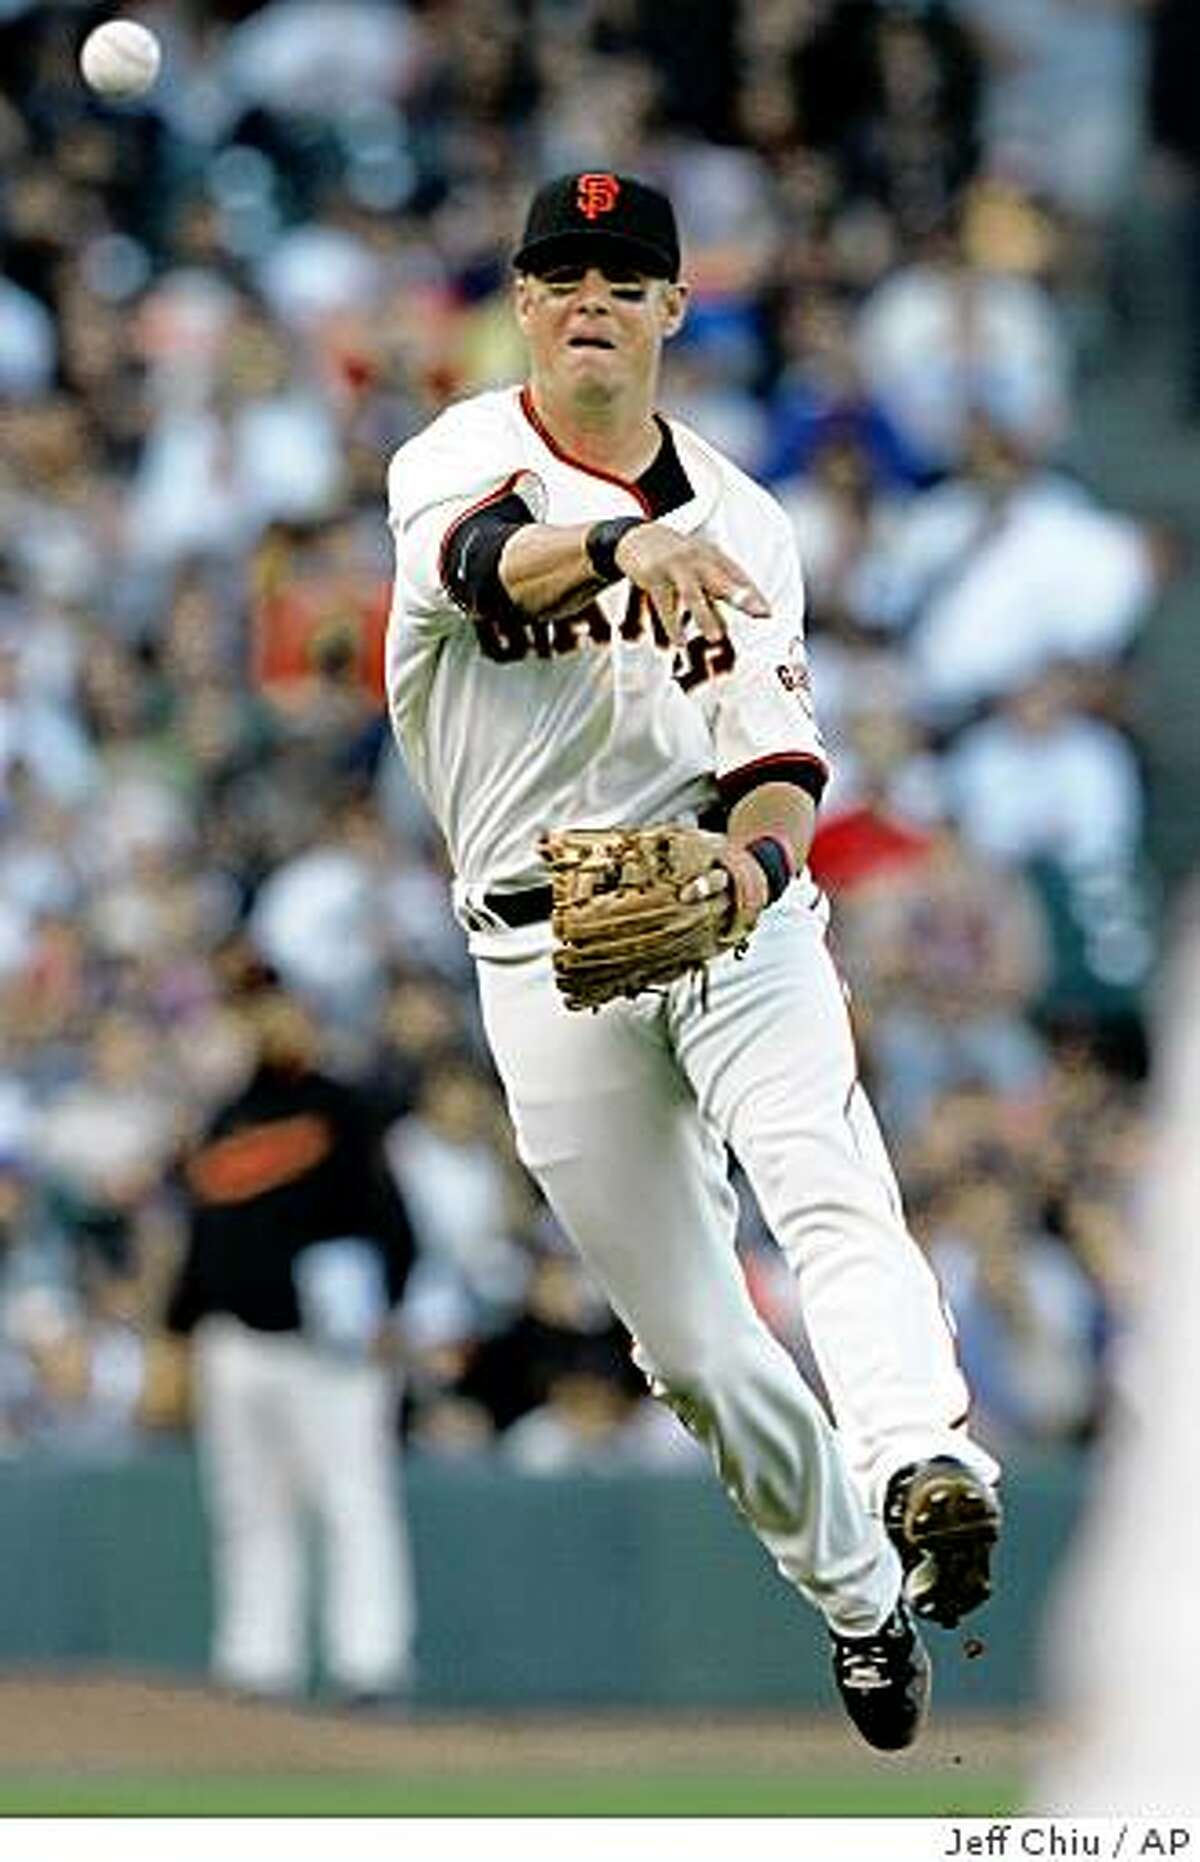 San Francisco Giants' Kevin Frandsen throws out New York Mets' Gary Sheffield in the sixth inning of a baseball game in San Francisco, Sunday, May 17, 2009. (AP Photo/Jeff Chiu)